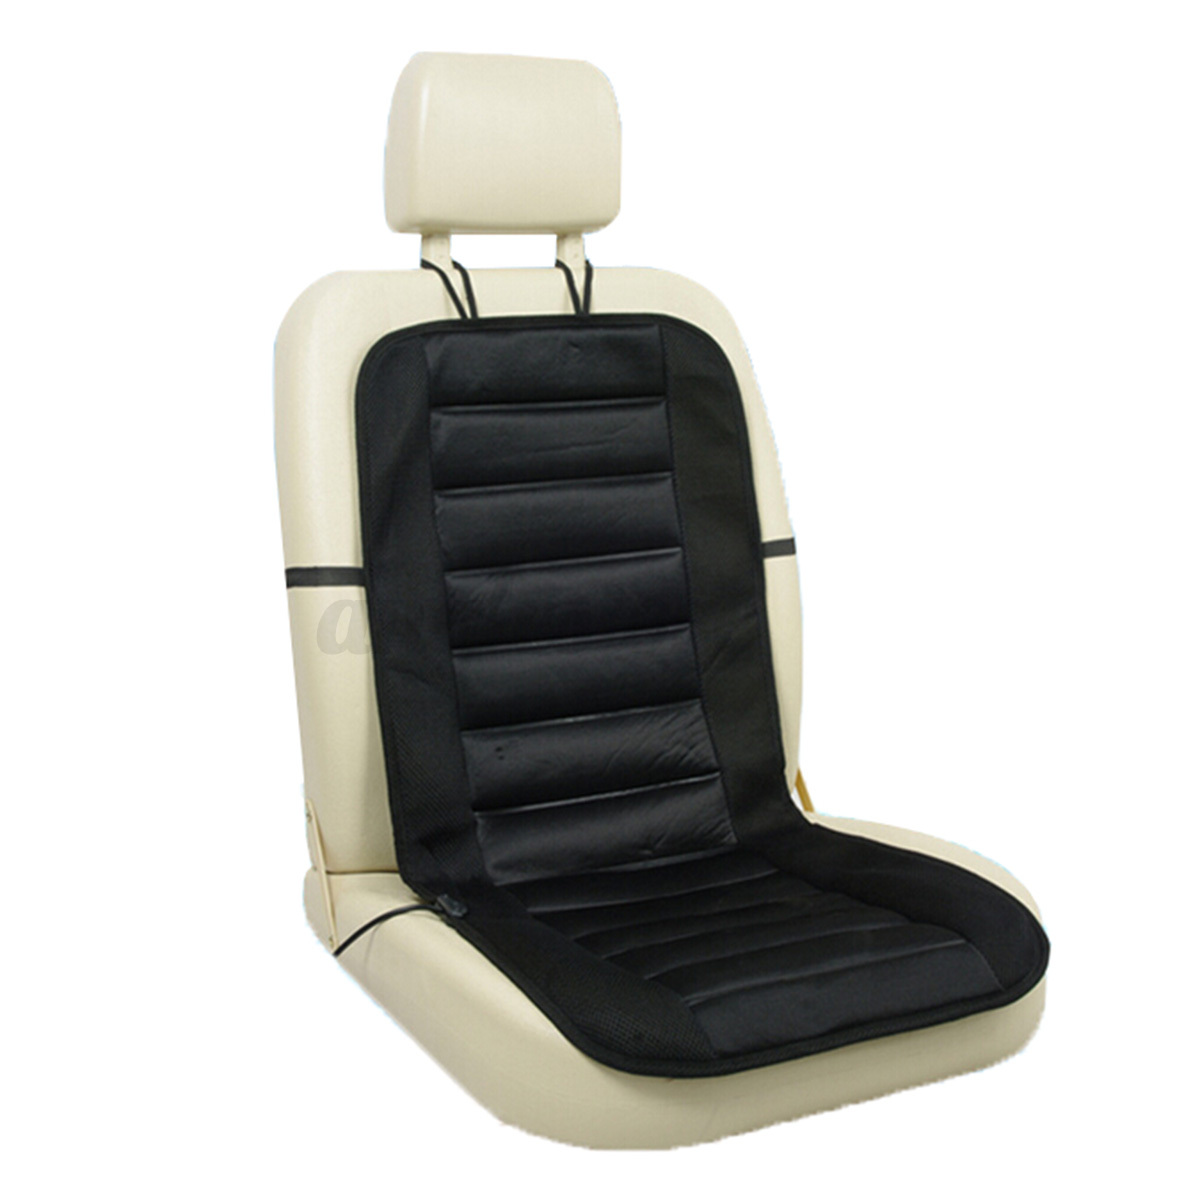 universal thickening car seat heating heated heater chair cushion warmer pad 12v ebay. Black Bedroom Furniture Sets. Home Design Ideas